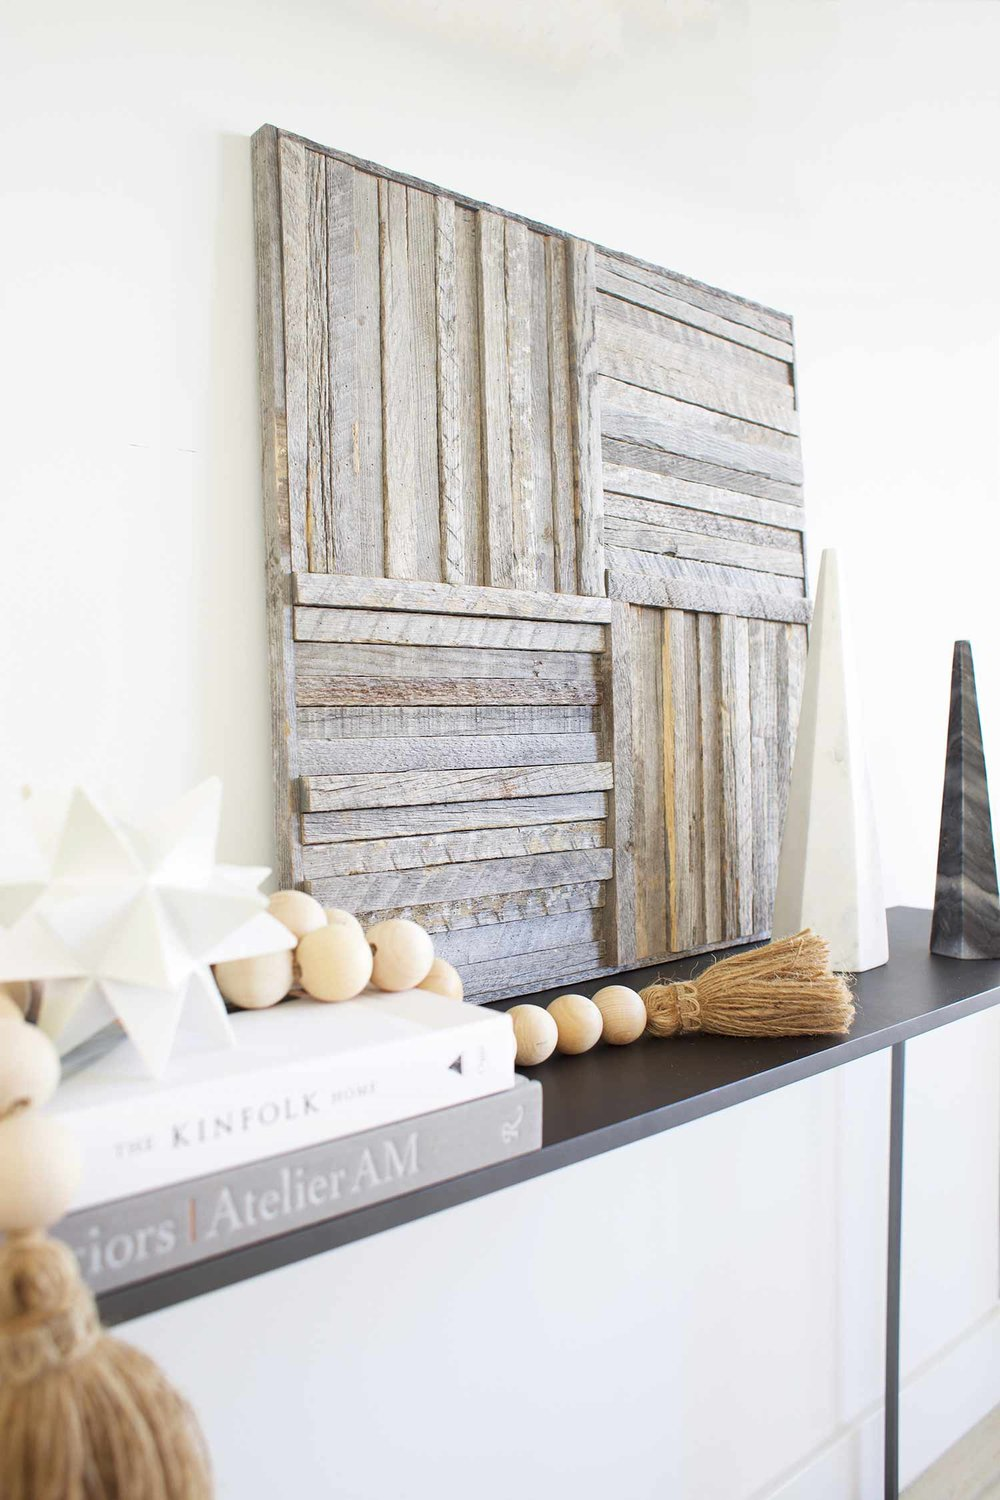 Stikwood wall art panel on credenza close up